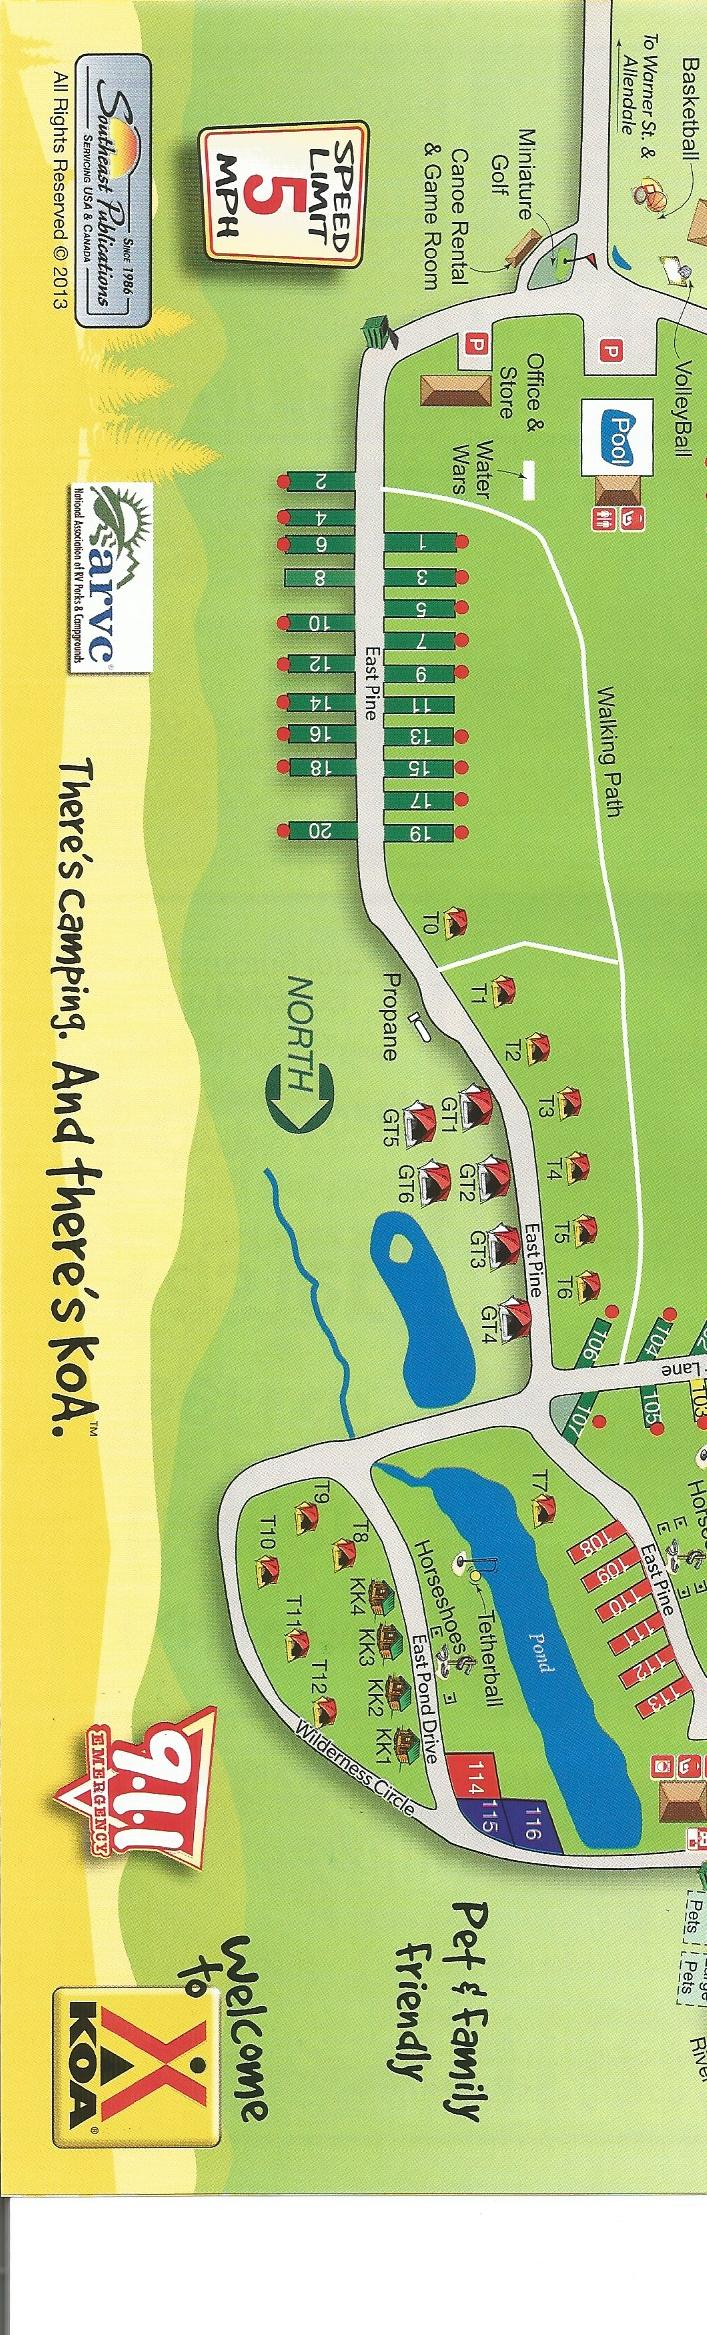 Grand Haven Campground >> Allendale, Michigan Campground | Allendale / West Grand Rapids KOA